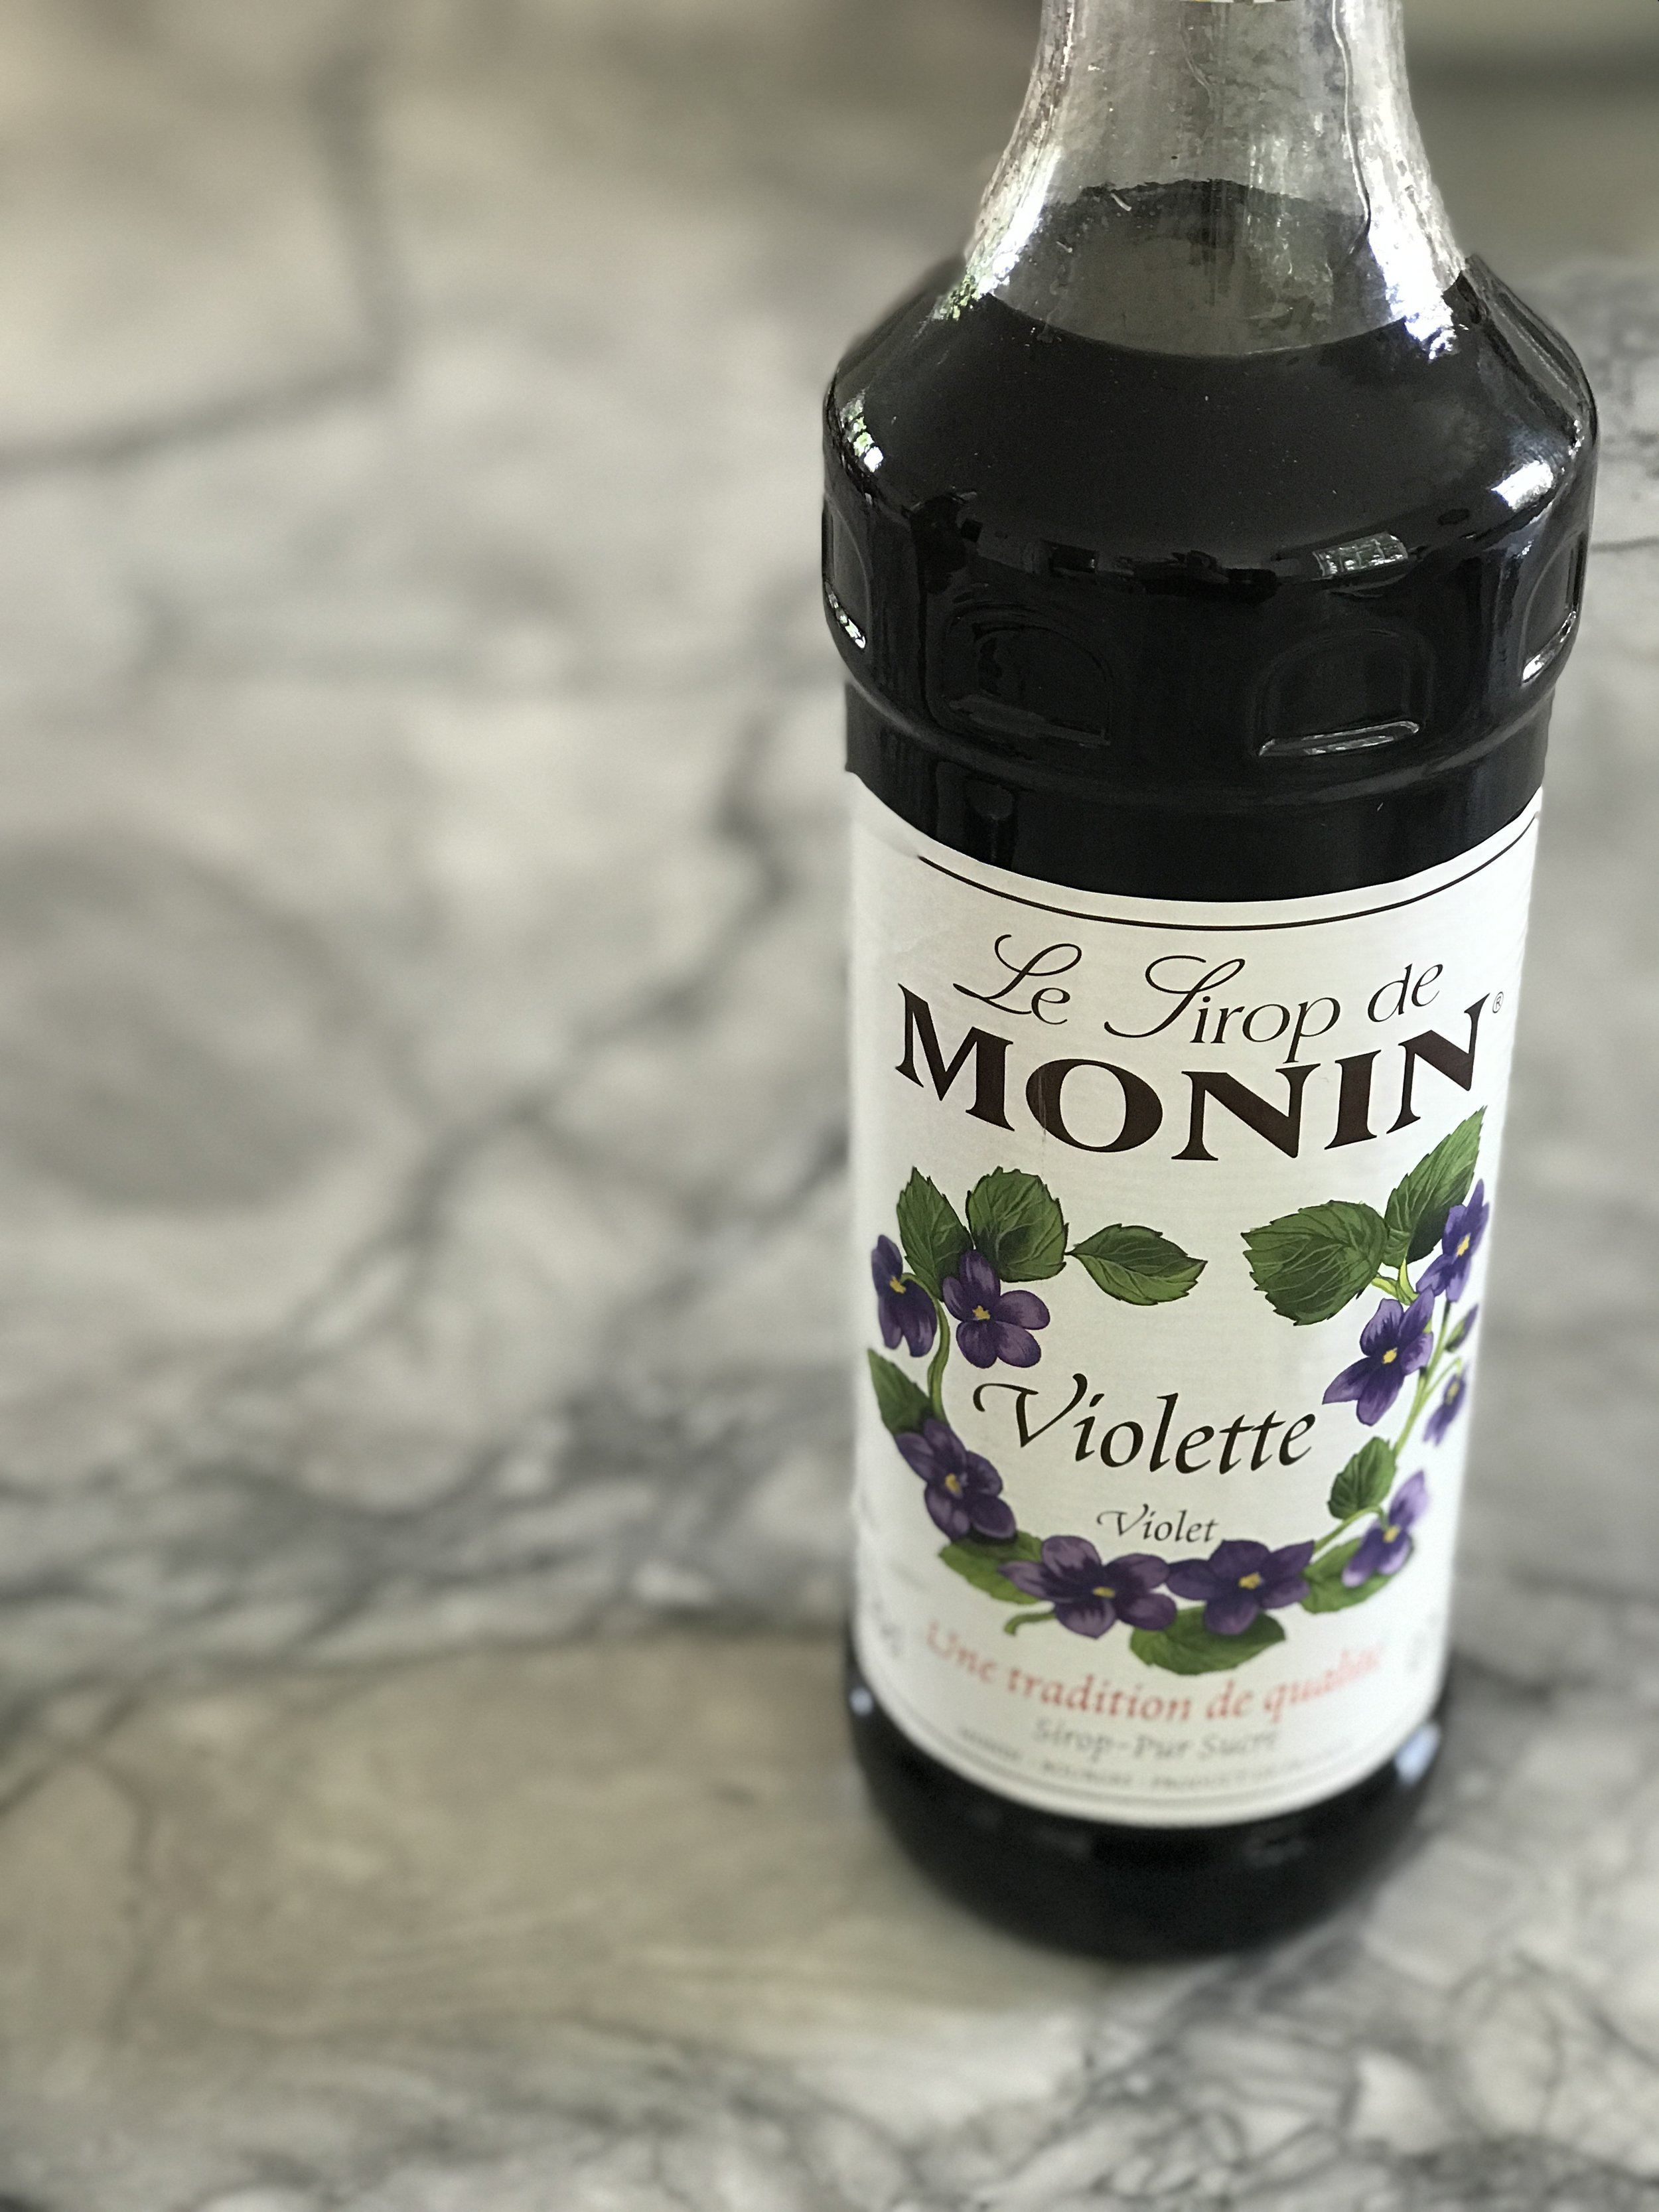 Monin Violette Syrup - I bought this on Amazon